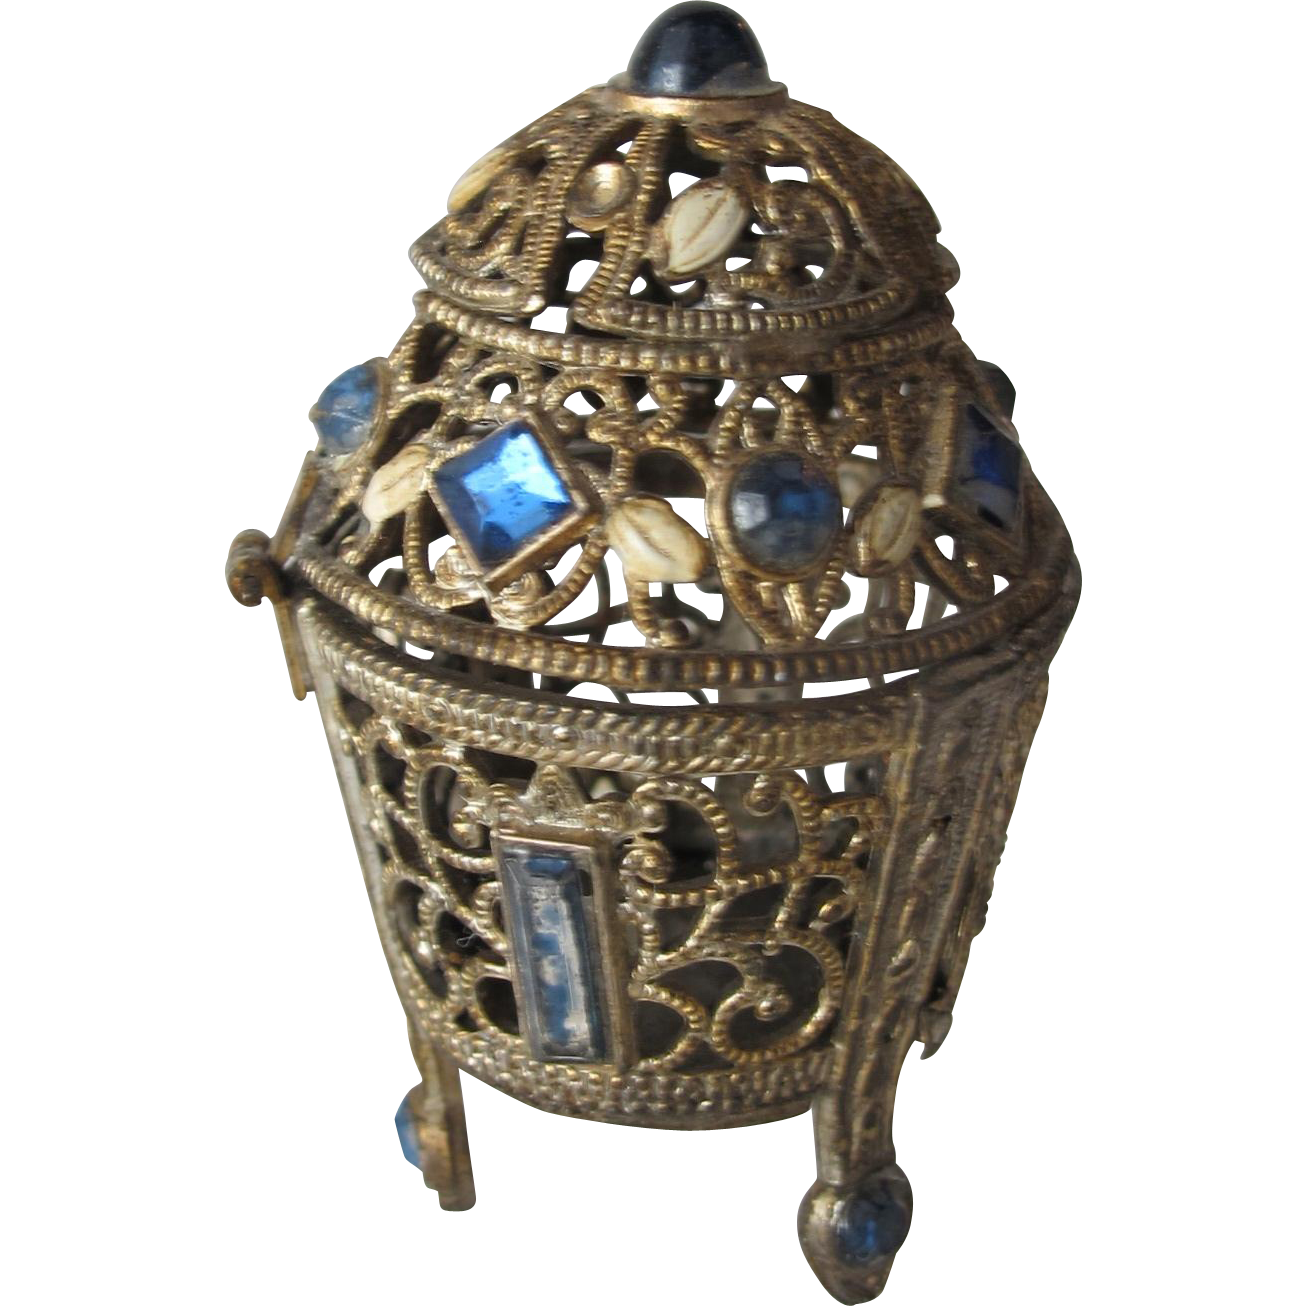 Irice Perfume Bottle Container Jeweled Filigree with Enamel Czechoslovakia